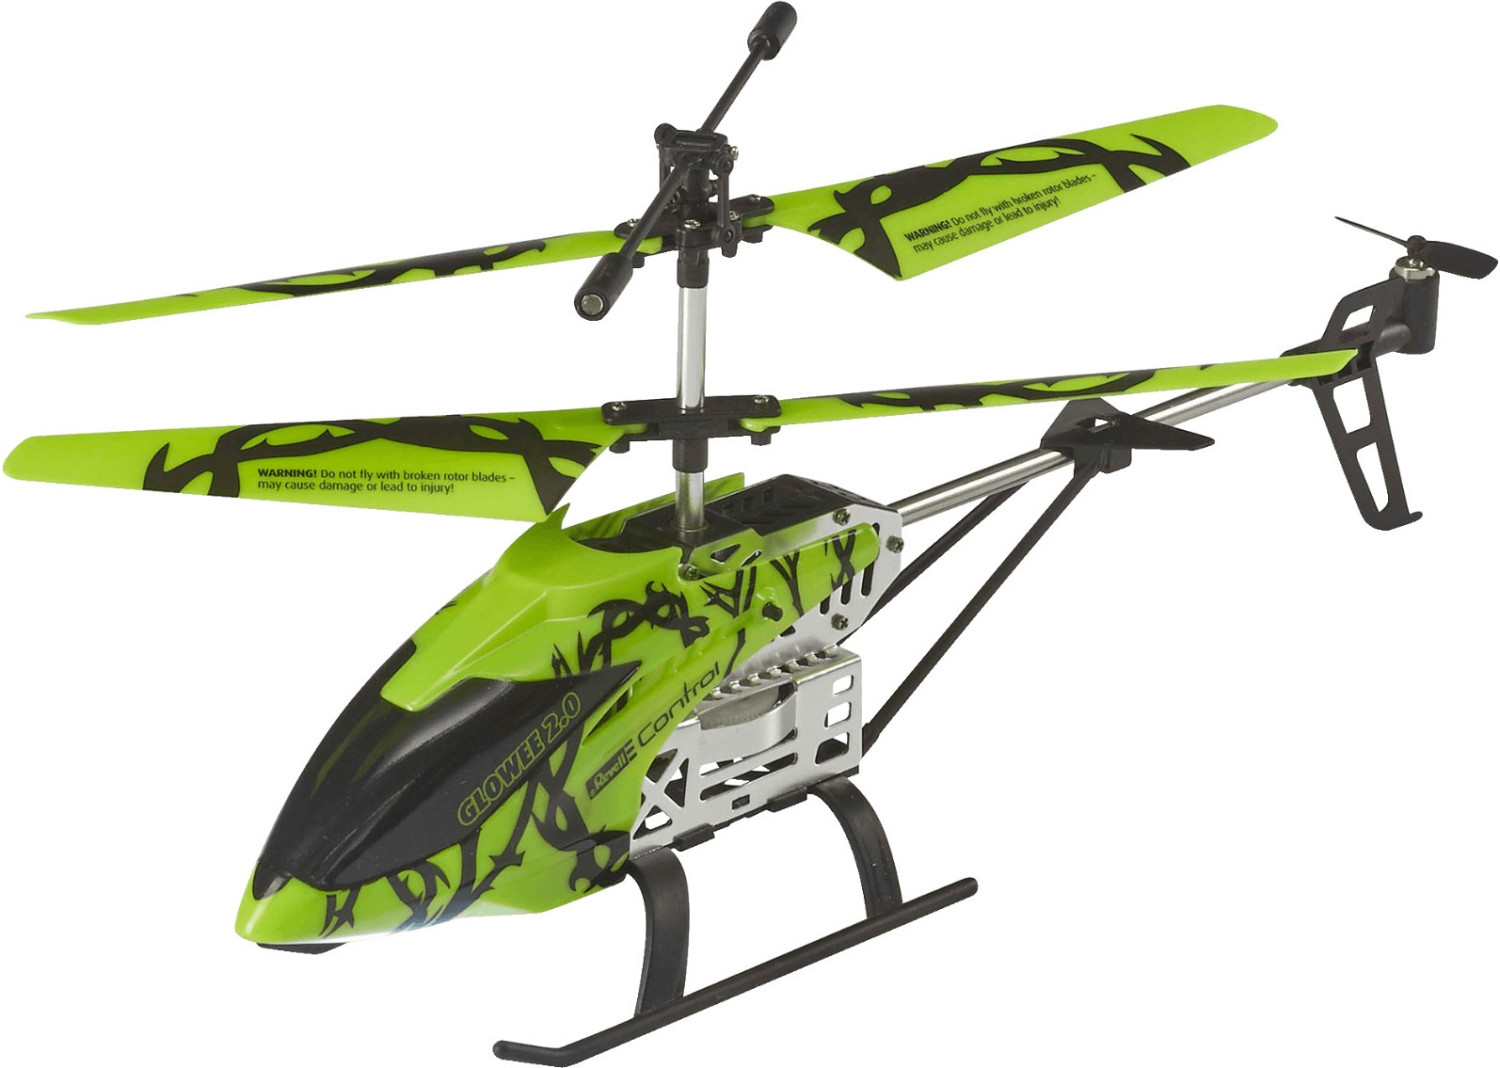 Revell Helicopter Glowee 2.0 (23940)